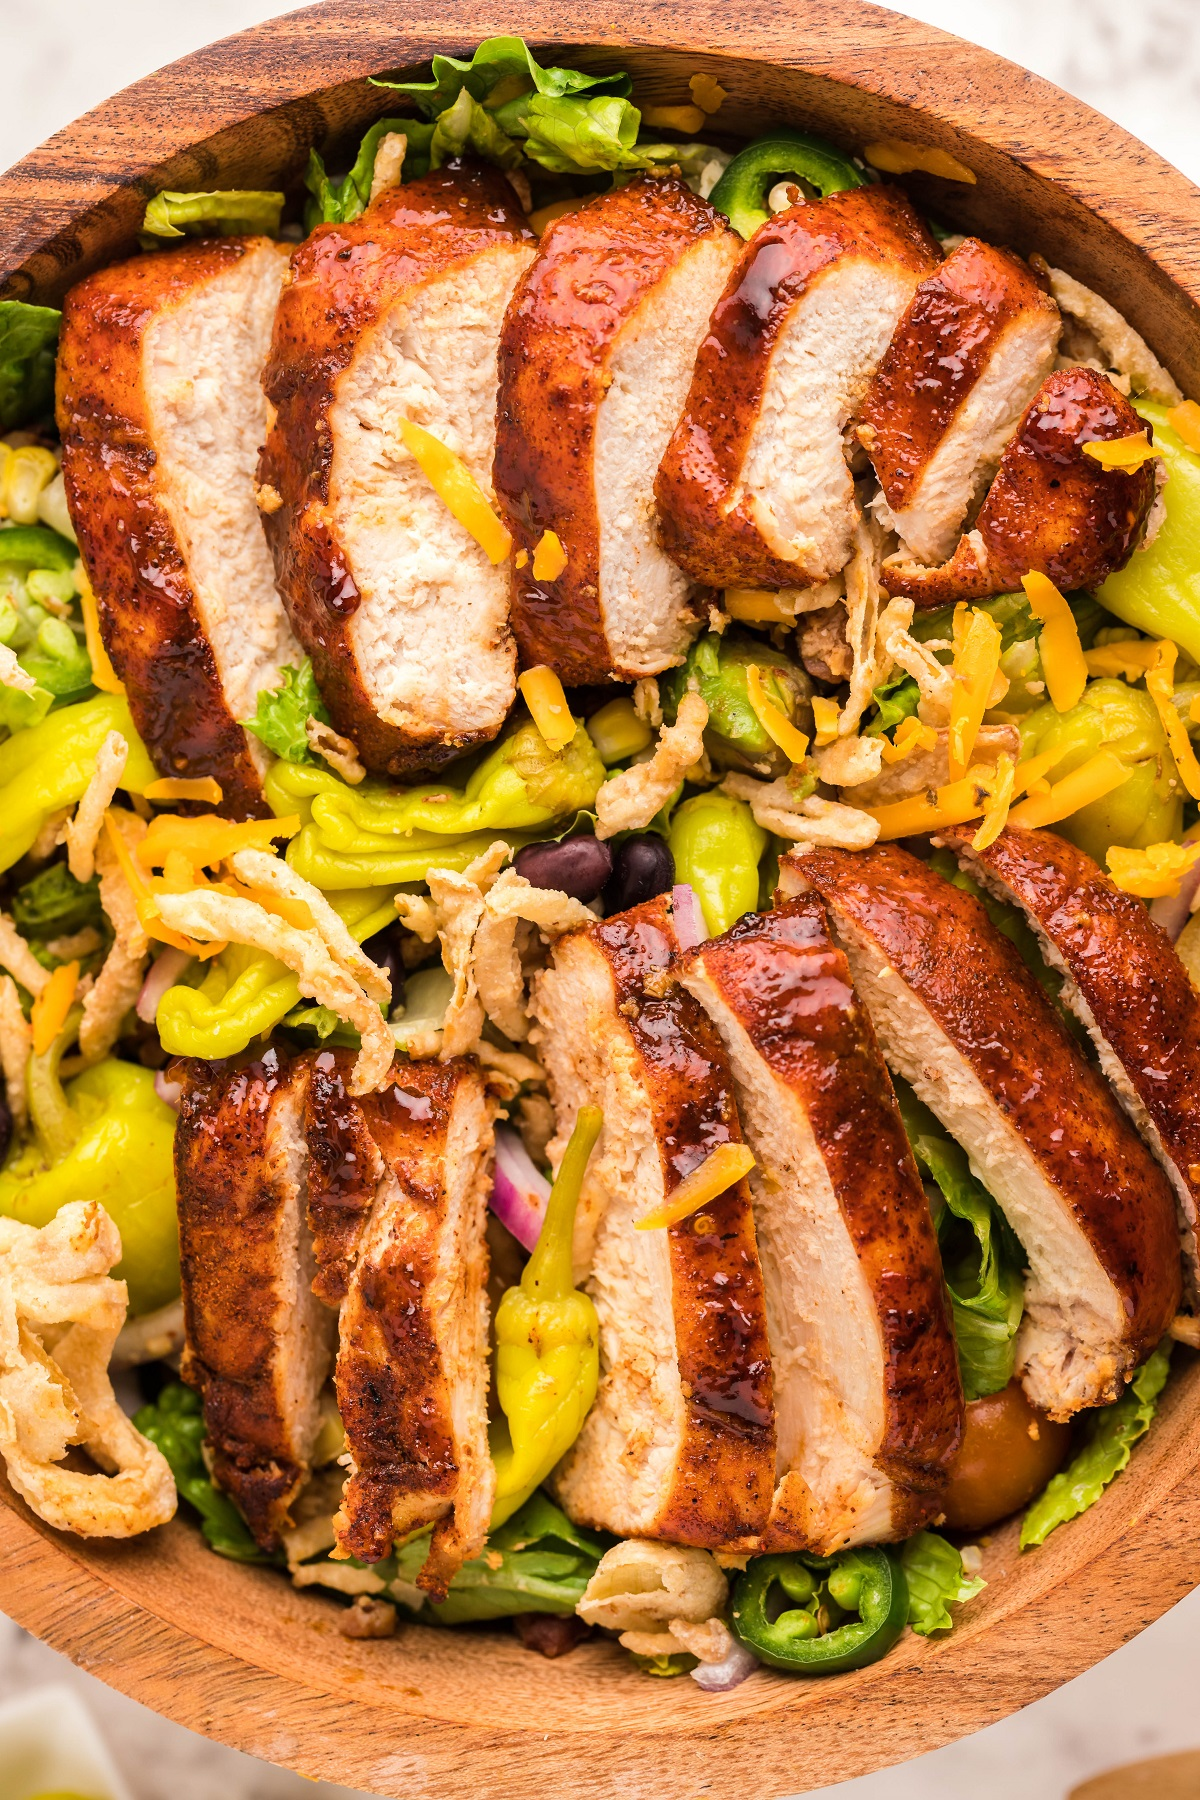 Grilled Chicken Salad in a large wooden salad bowl topped with fried onions, grated cheese, jalapenos and pepperoncini.